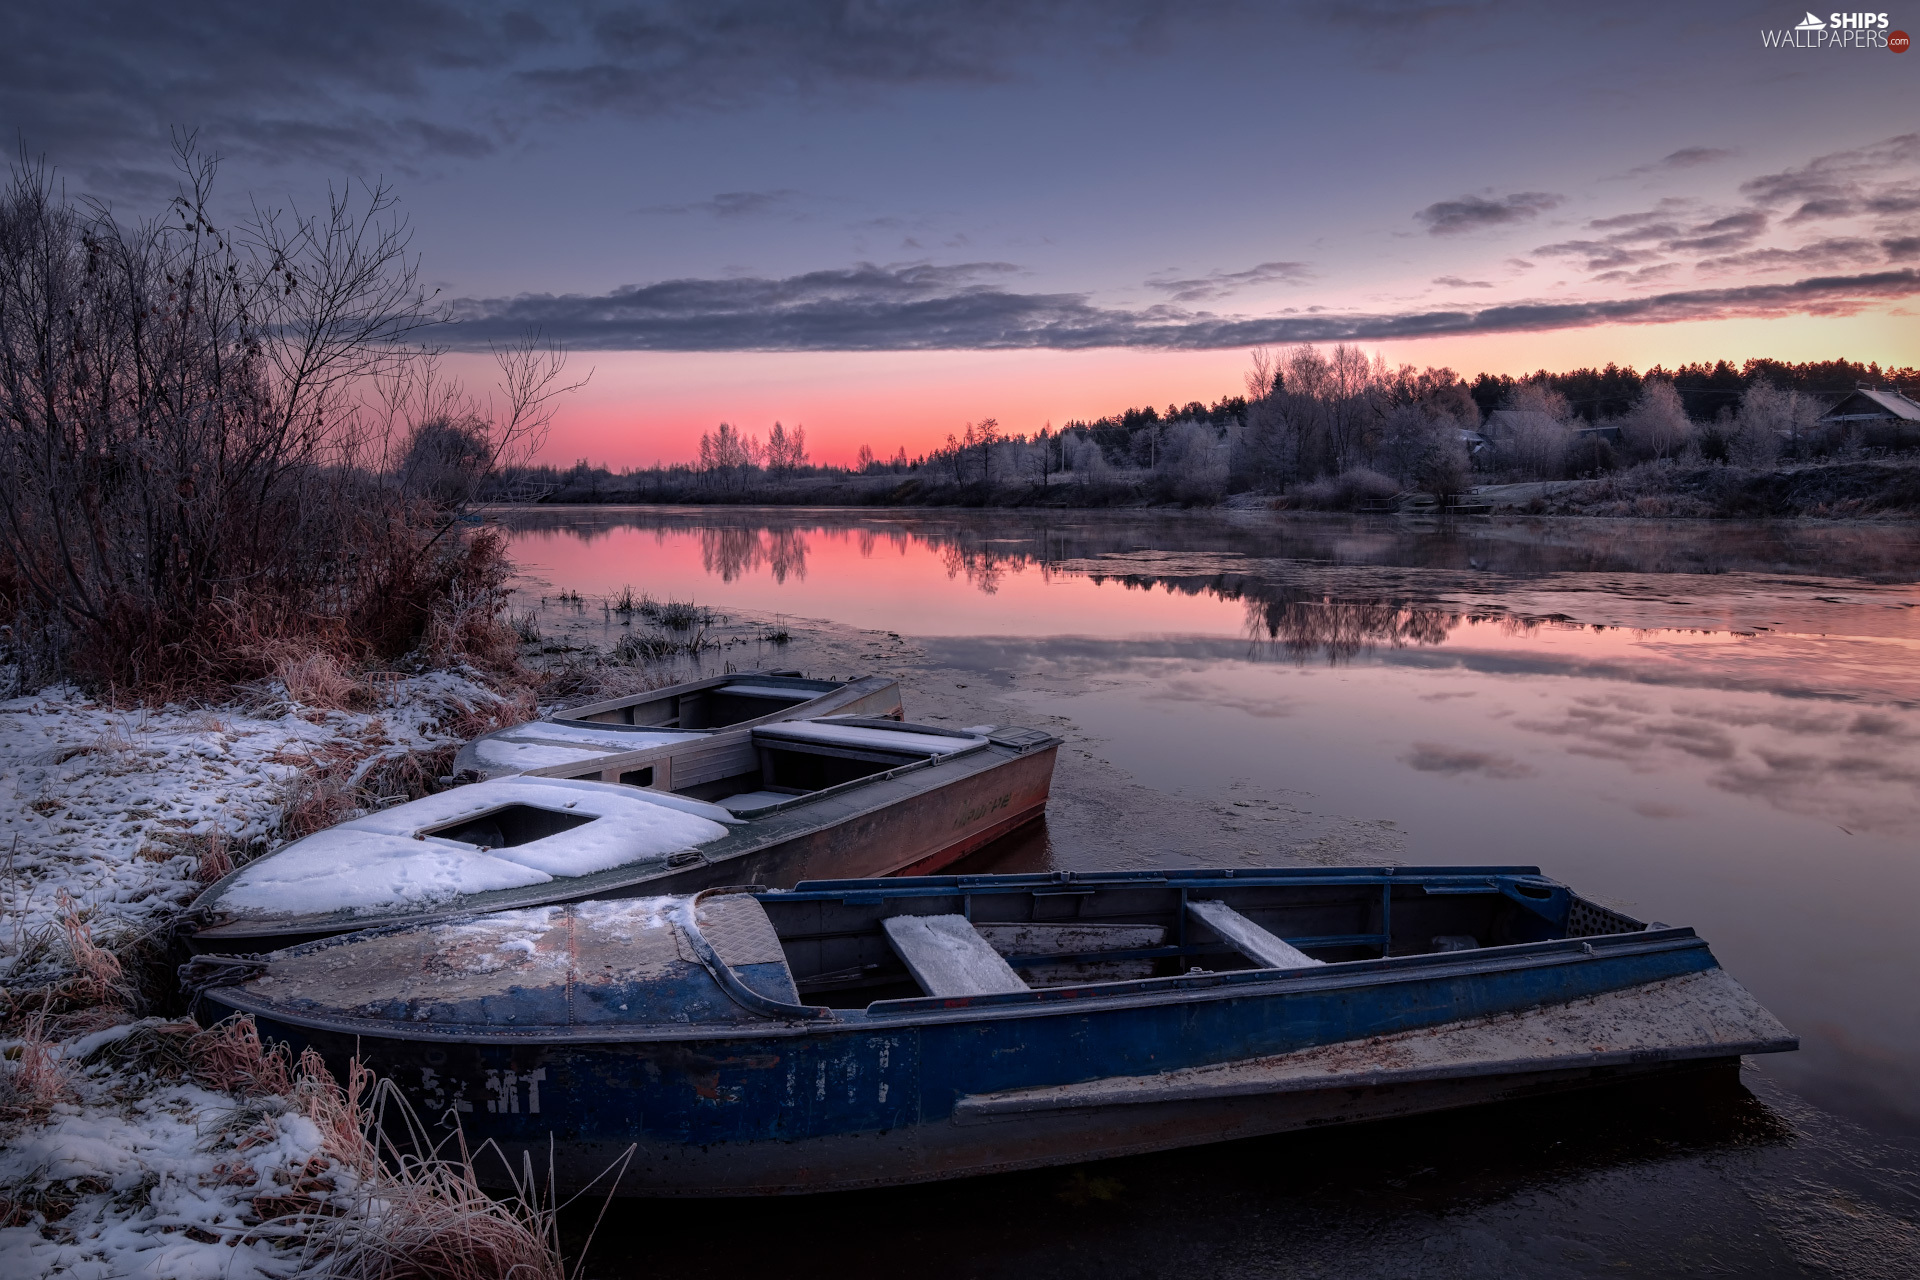 winter, boats, viewes, Latgale, coast, Dubna River, trees, Latvia, country, Great Sunsets